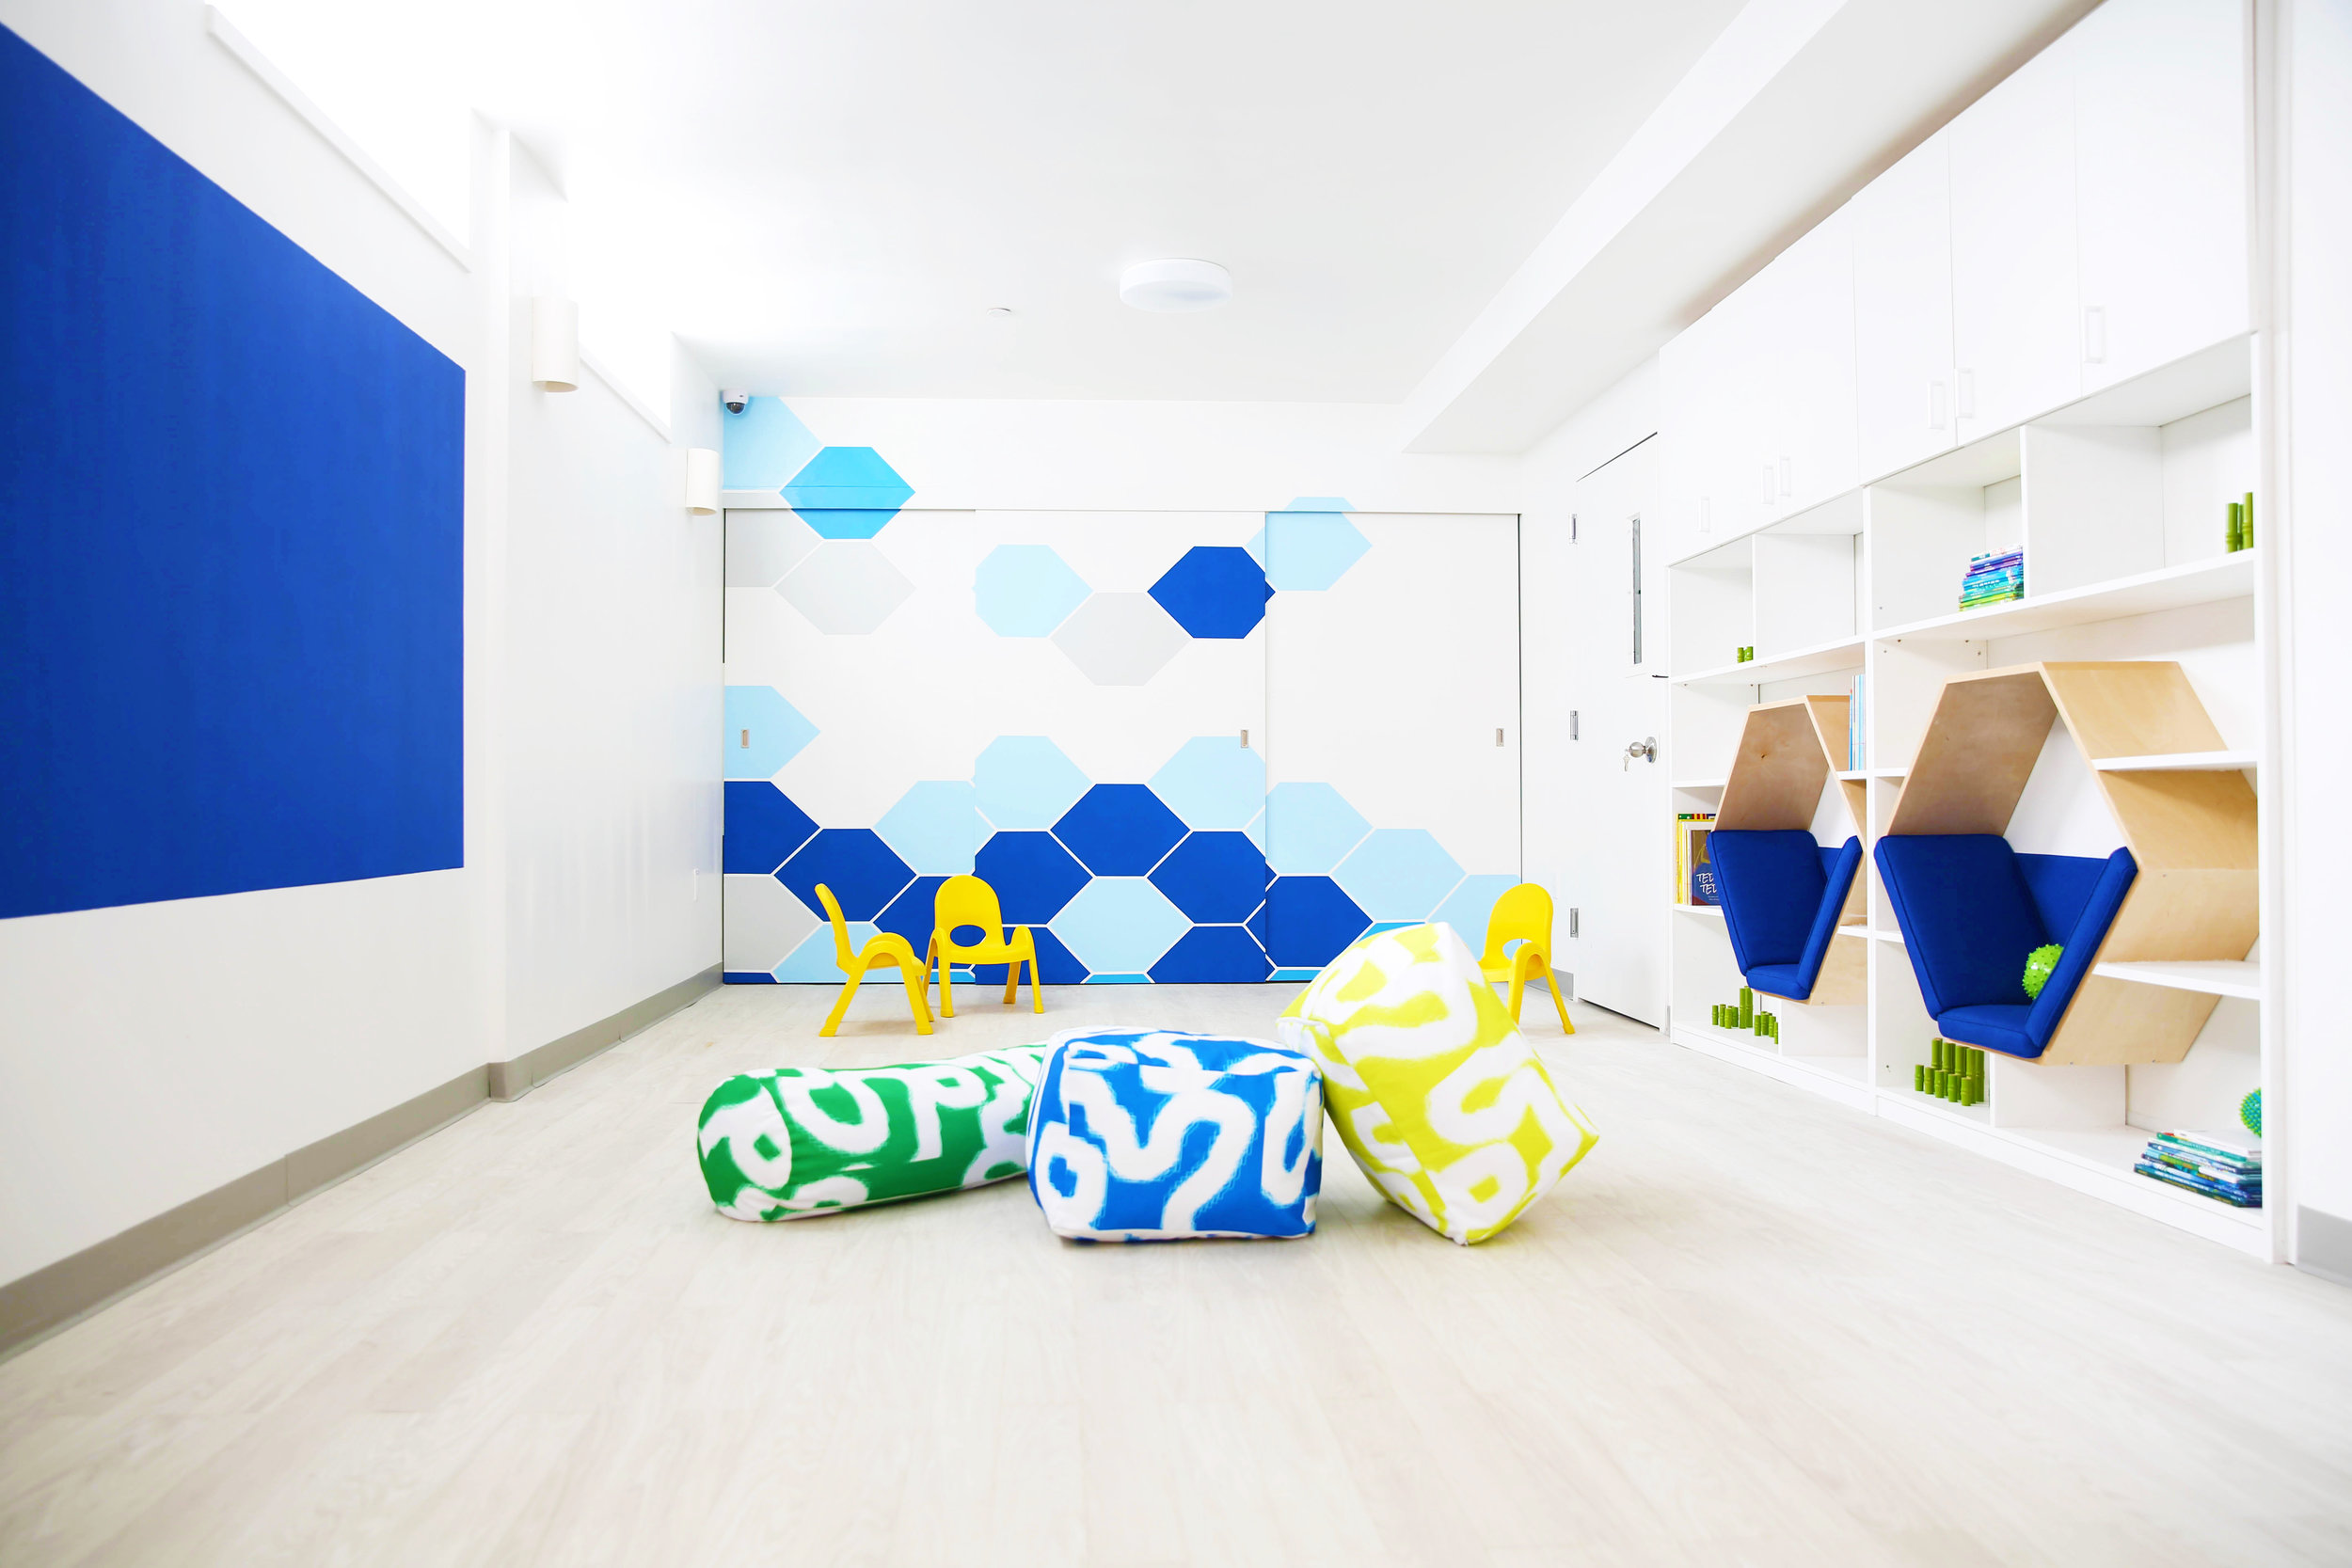 Daycare interior design project. Gut renovation of a former thrift shop.Modern, minimal interiors.  Photo credit: Niya Bascom Photography. Please do not use images without express written permission from Ishka Designs or Niya Bascom